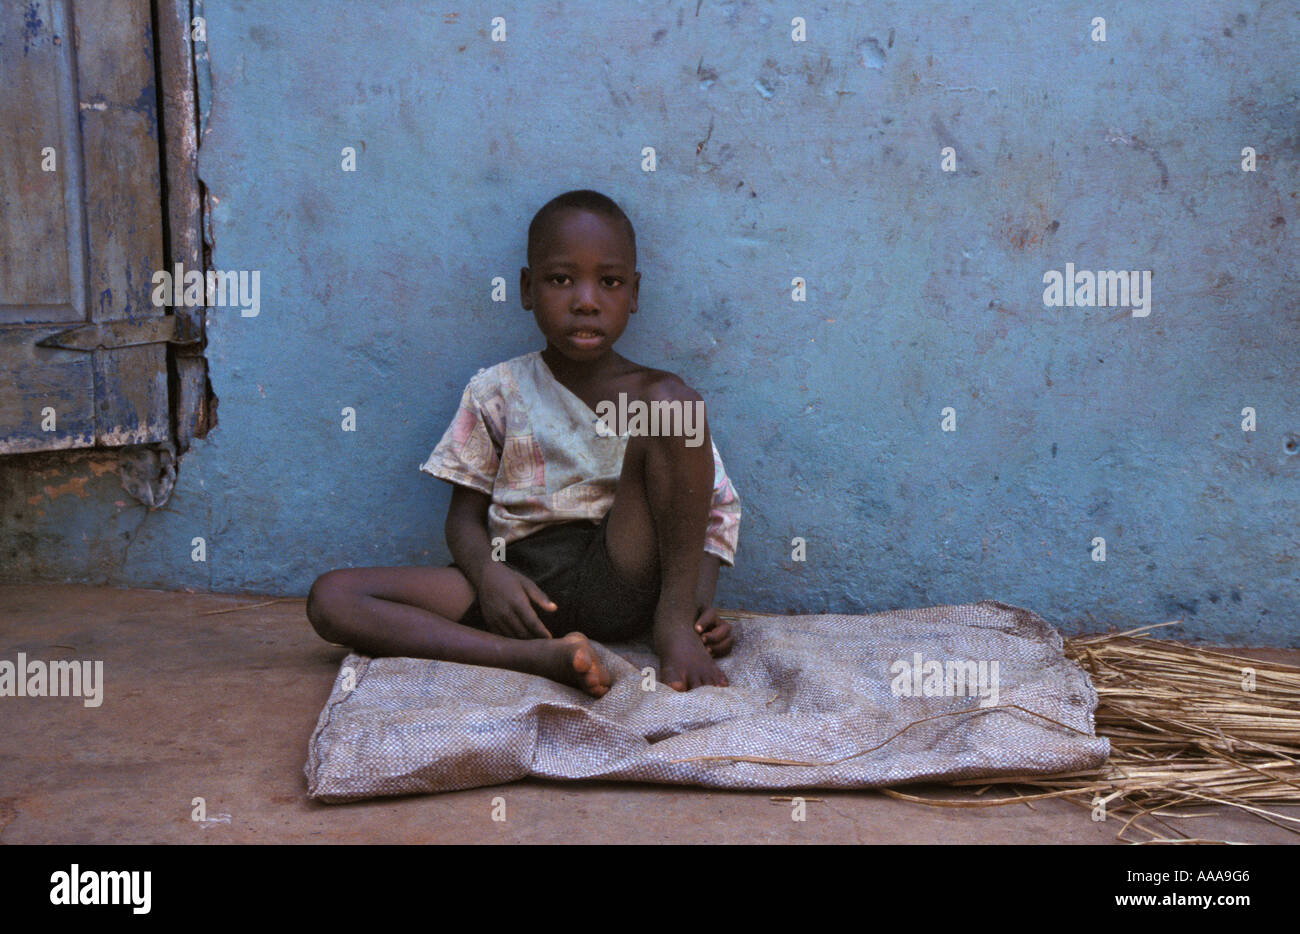 8933775217df5 Homeless little boy living on the streets of Accra